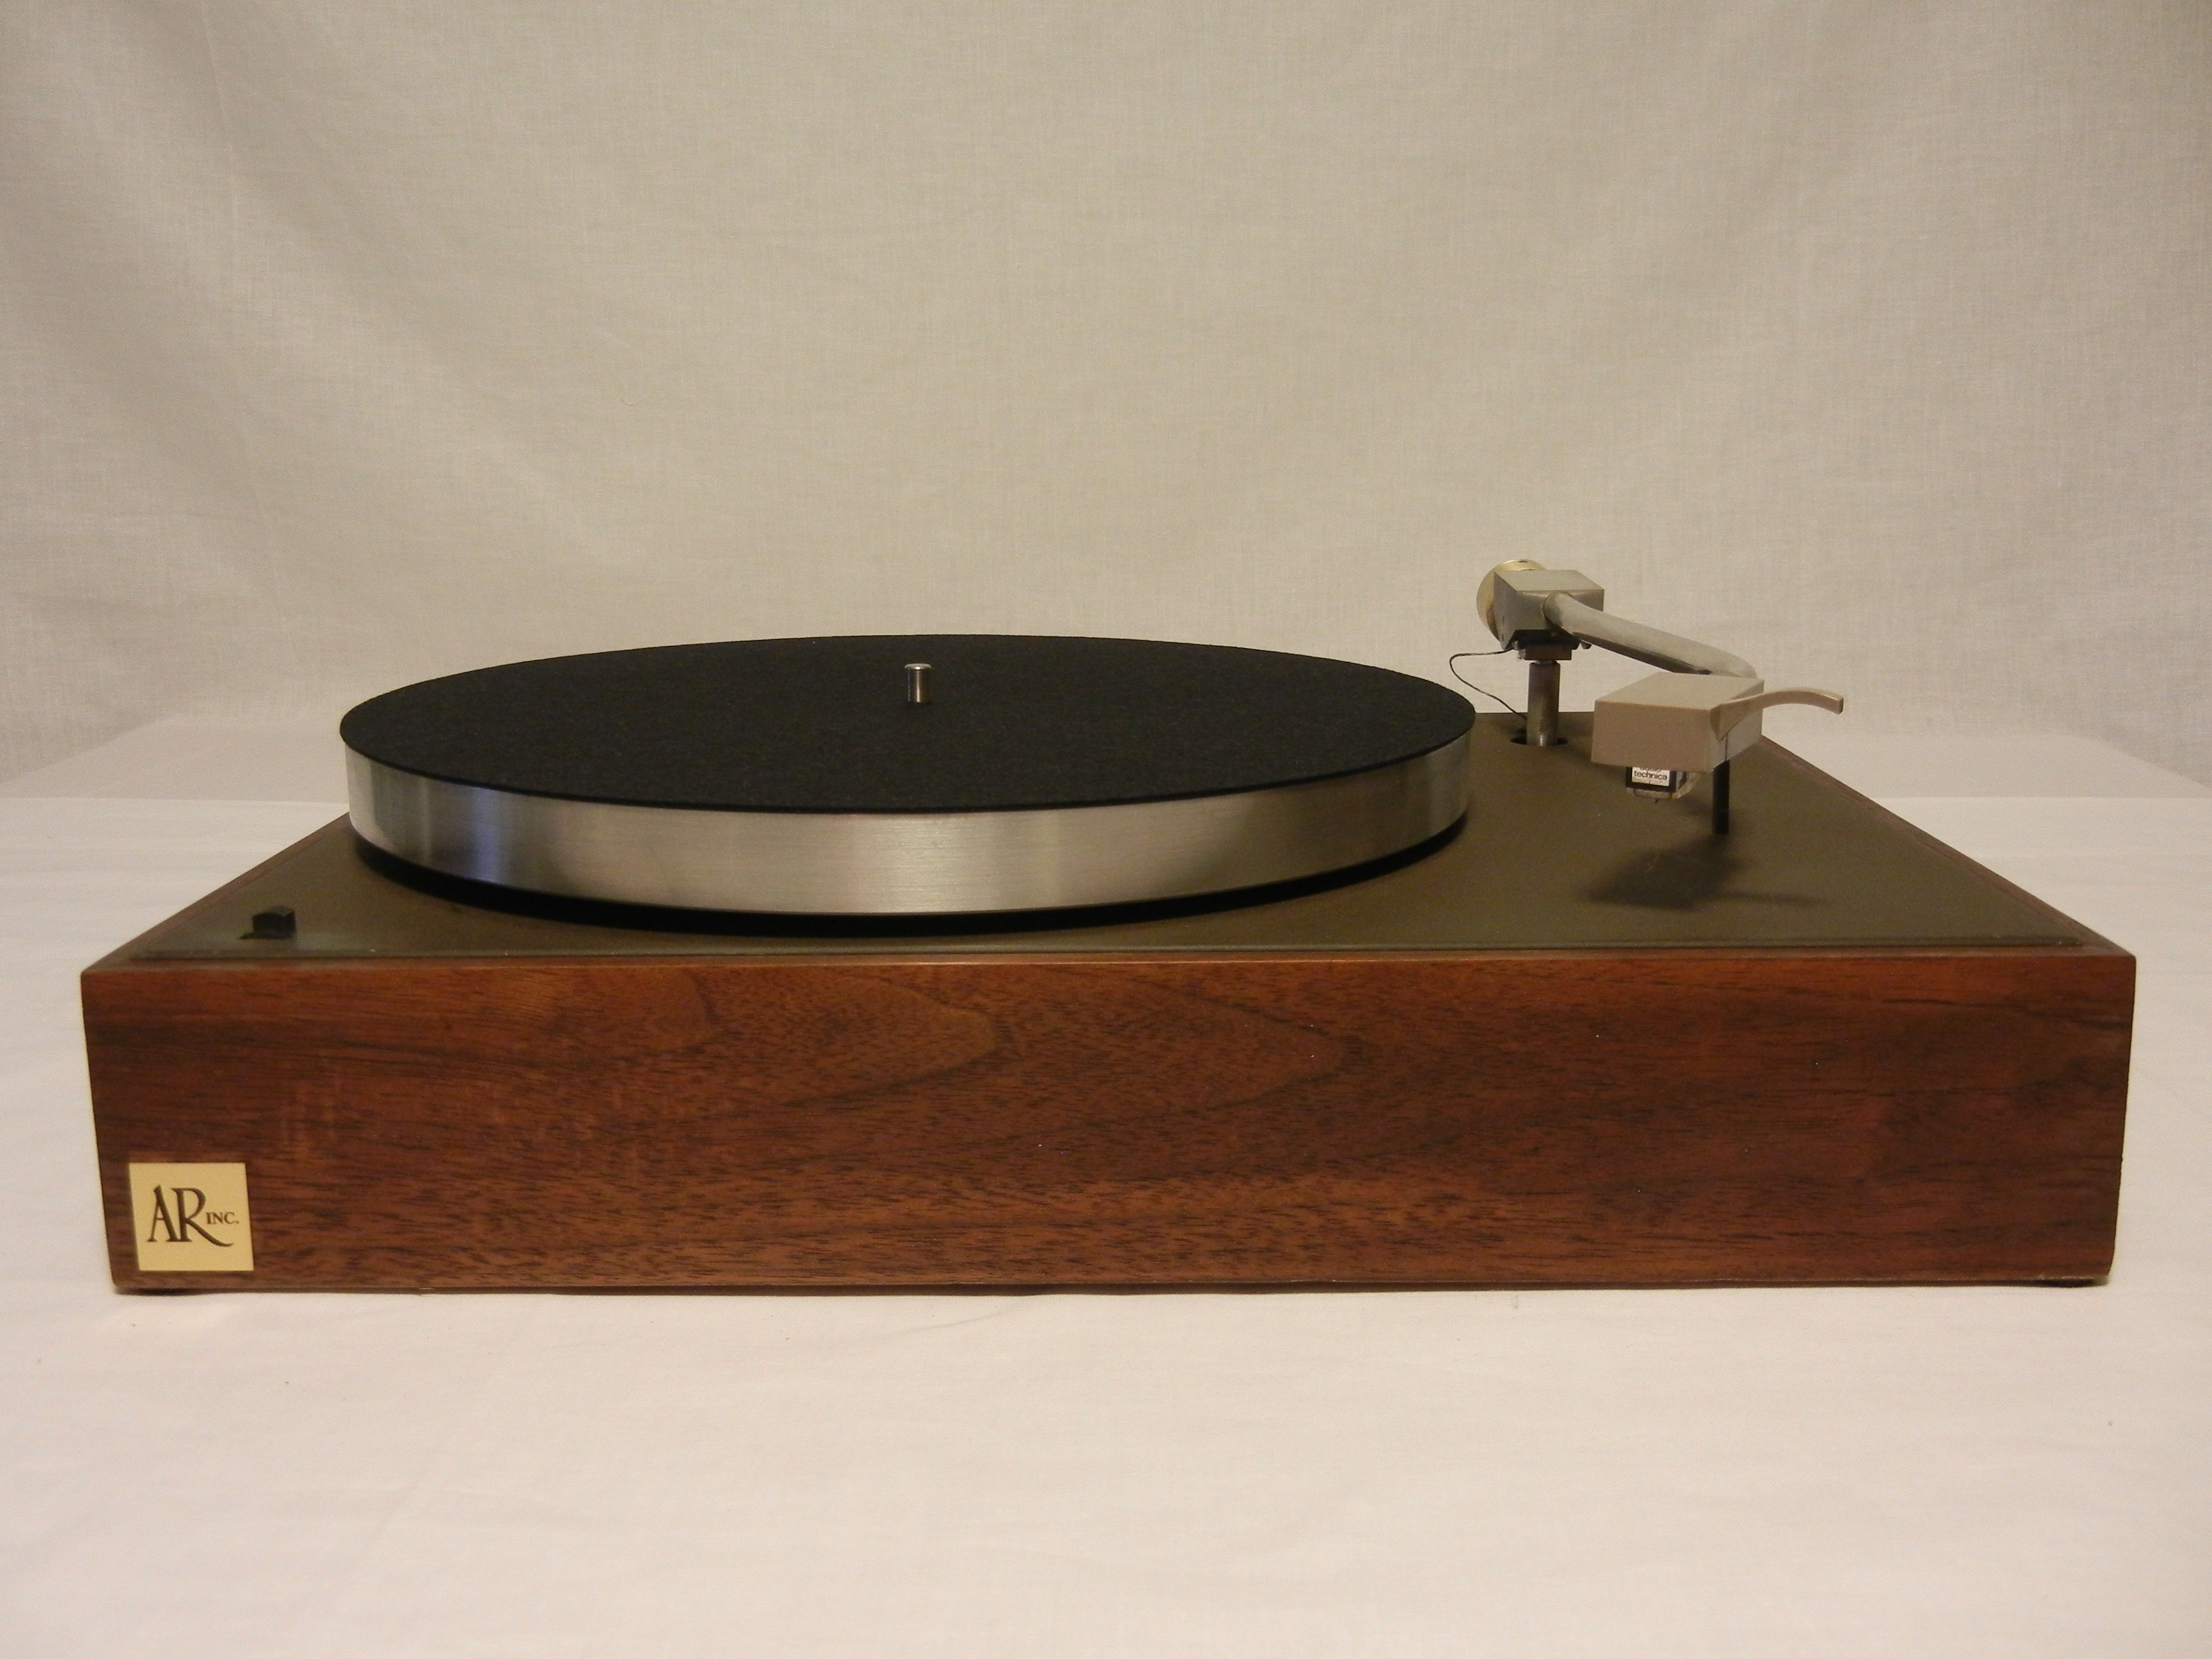 Audio Note TT2 Deluxe turntable with outboard power supply